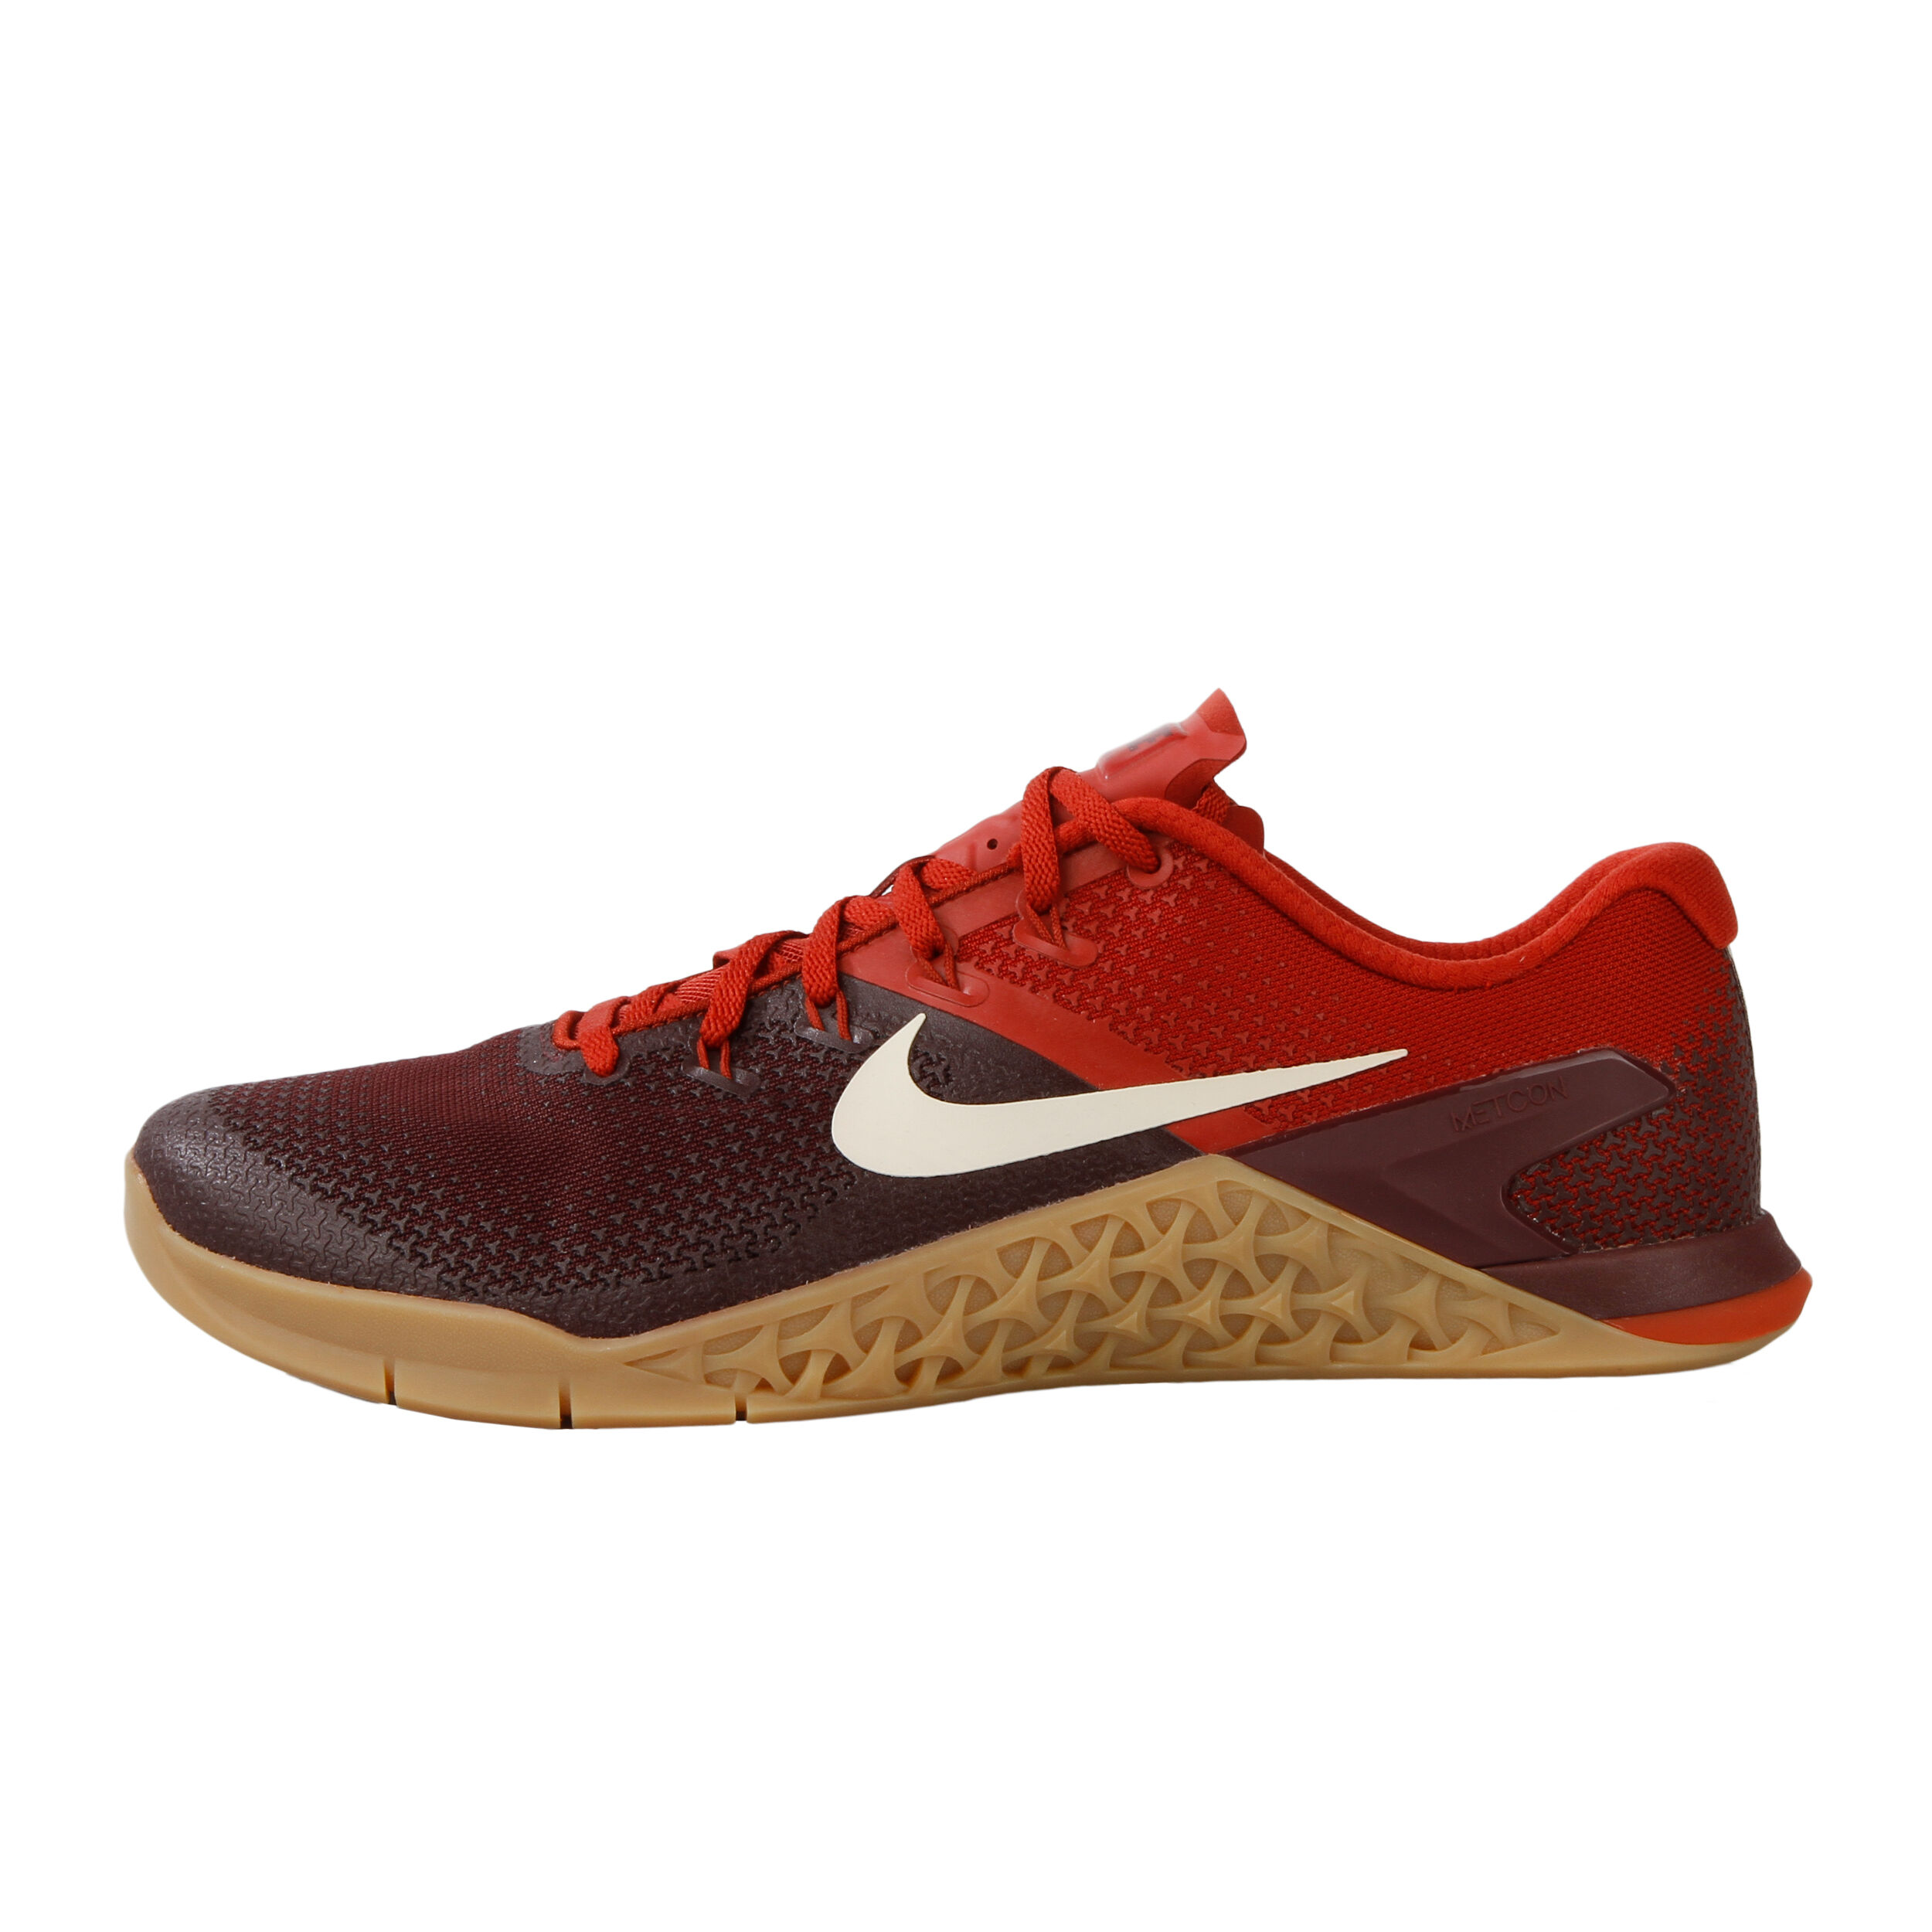 4 Metcon Red Fitness Buy Online Men Red Dark Nike Jogging Shoe ATxpwqU1